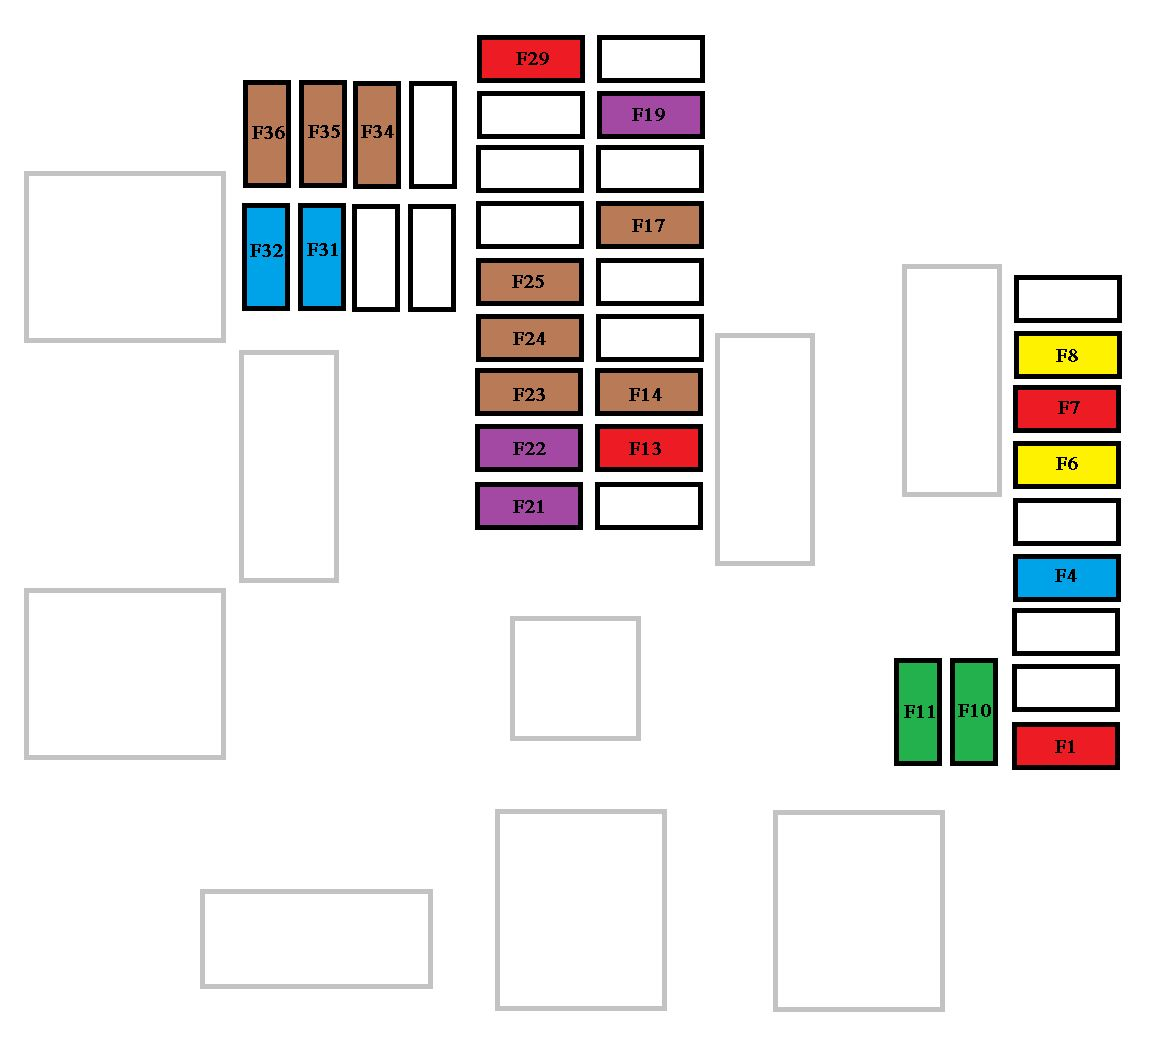 Peugeot 306 Gti 6 Fuse Box Wiring Diagram Td All Diagrampeugeot Auto Electrical